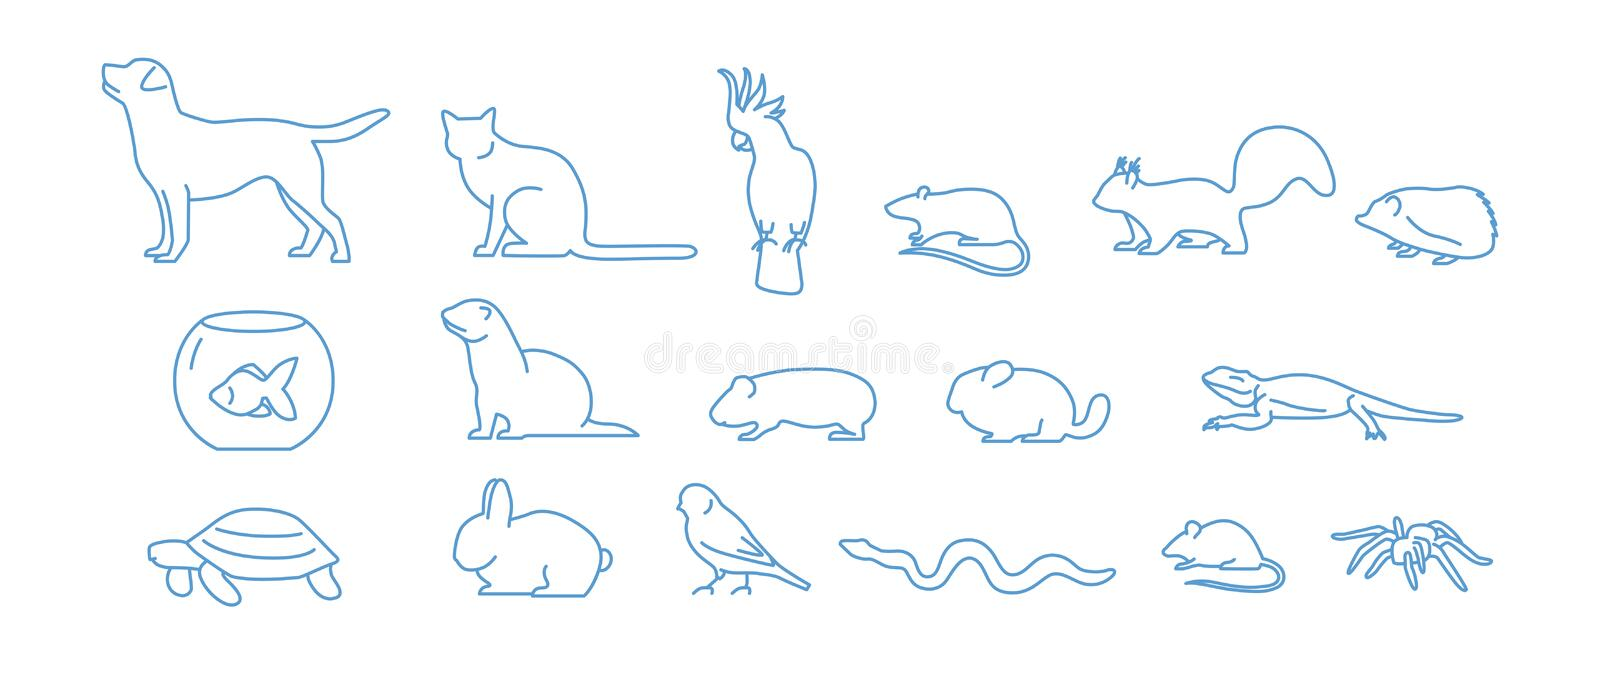 Collection of pet icons drawn with blue contour line on white background. Set of domestic animal linear symbols. Vector. Illustration royalty free illustration